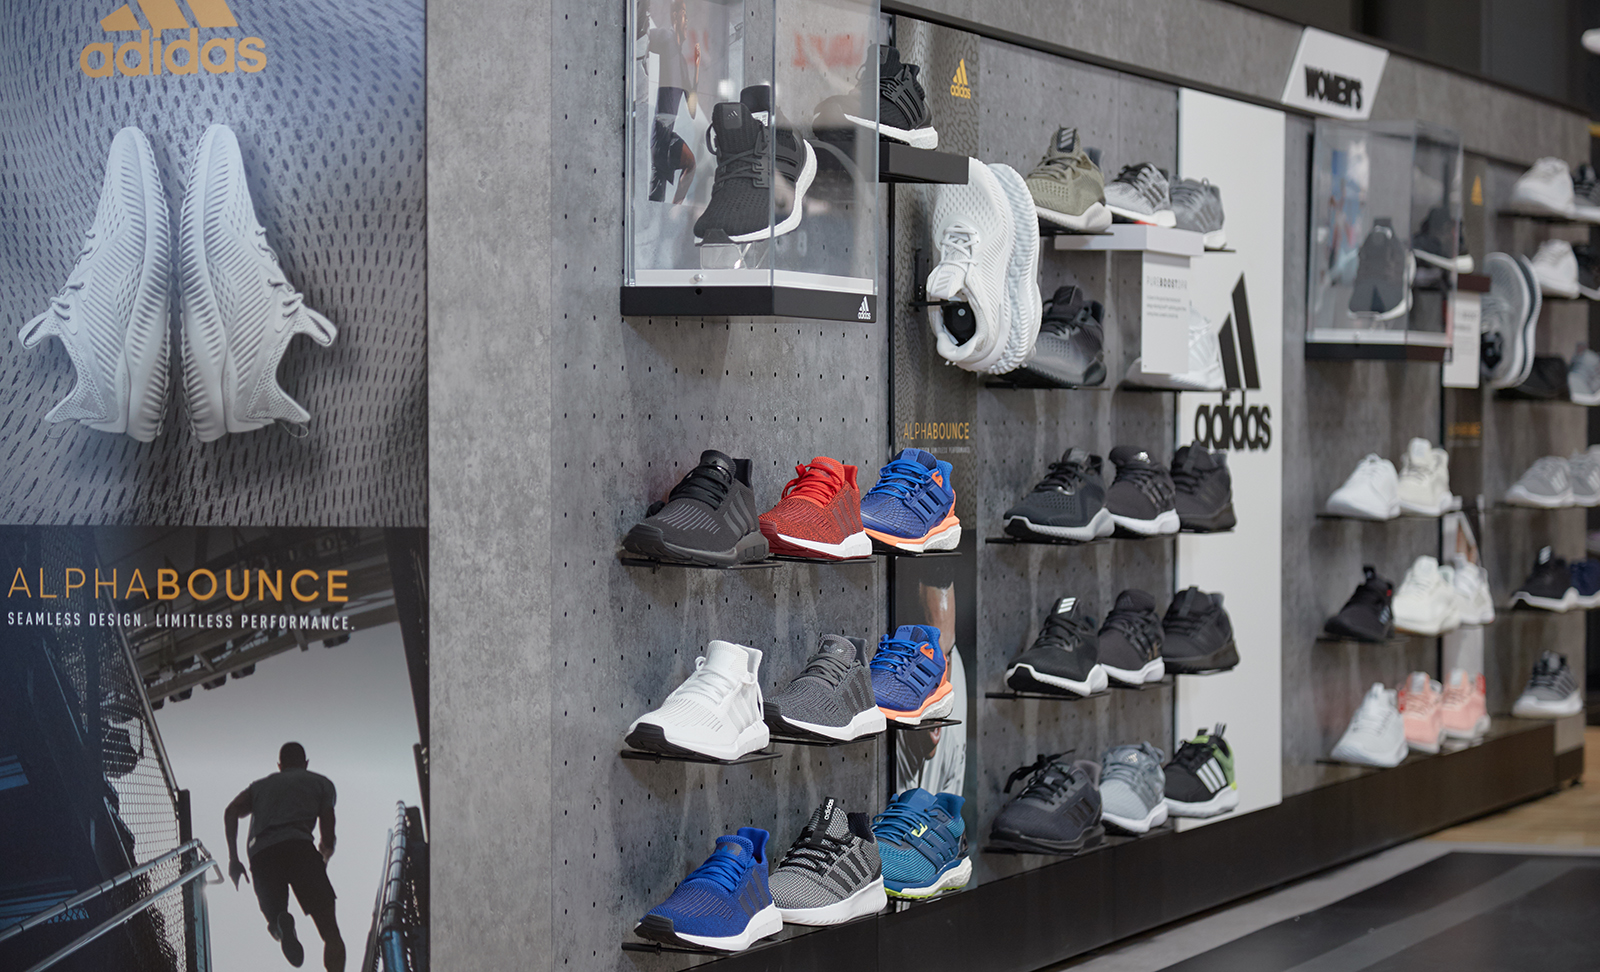 A closer look at the custom built shoe wall display designed and manufactured by The Bernard Group.